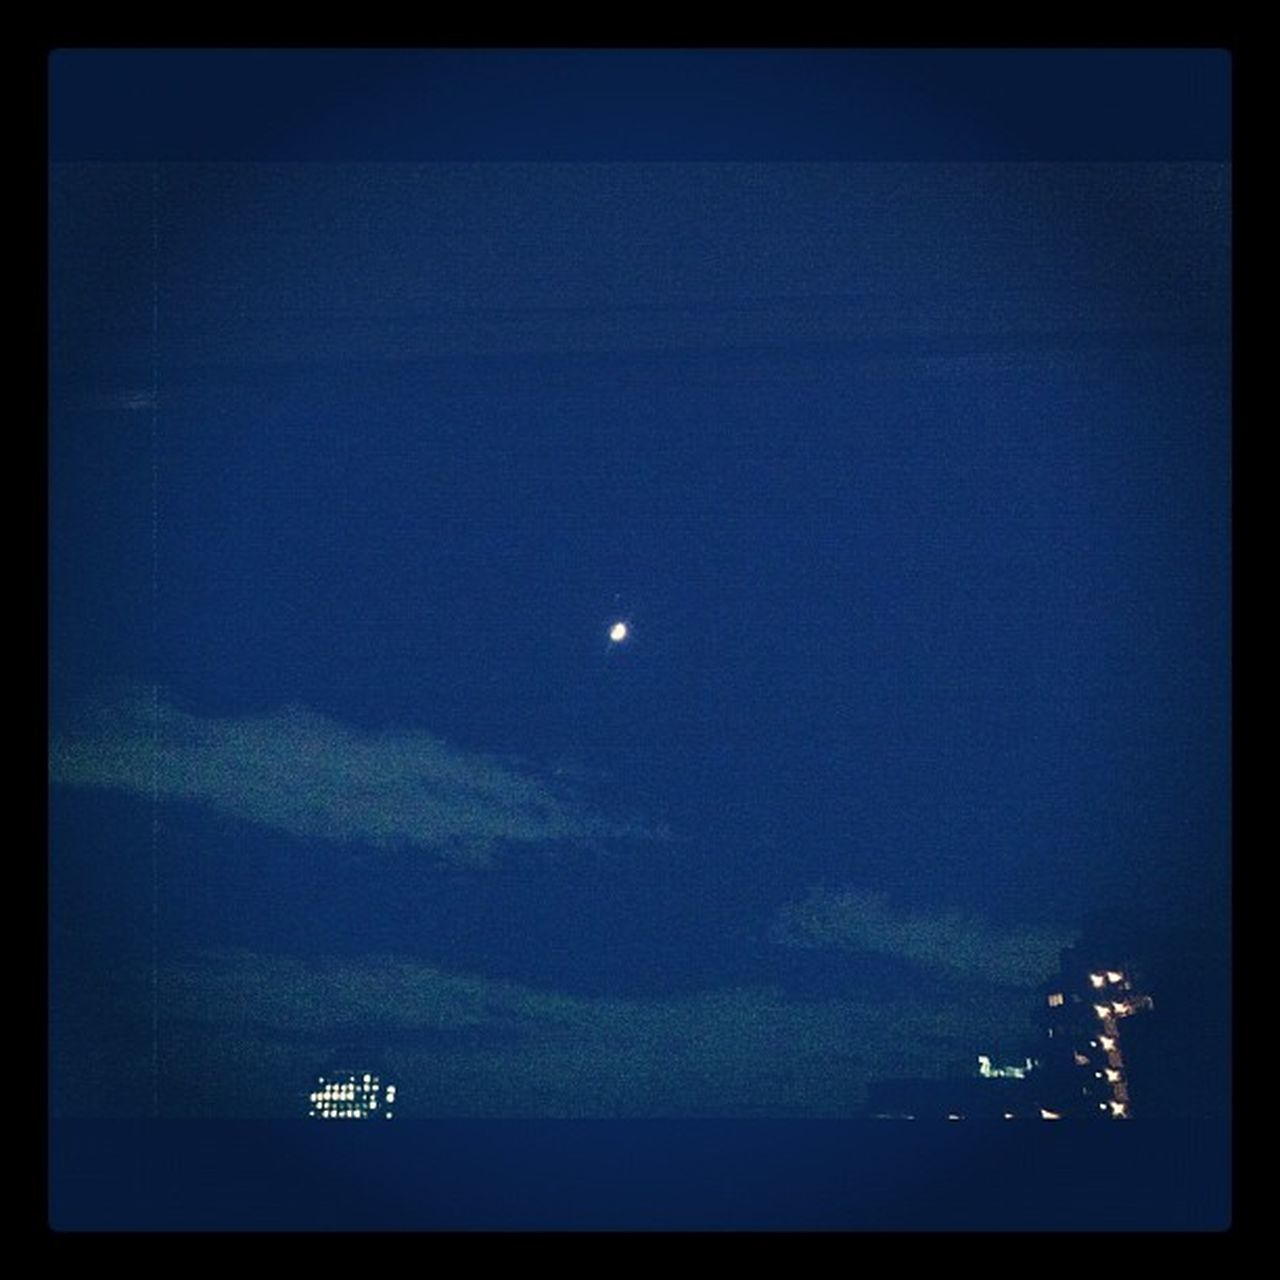 moon, night, astronomy, blue, scenics, nature, no people, beauty in nature, sky, half moon, outdoors, crescent, space